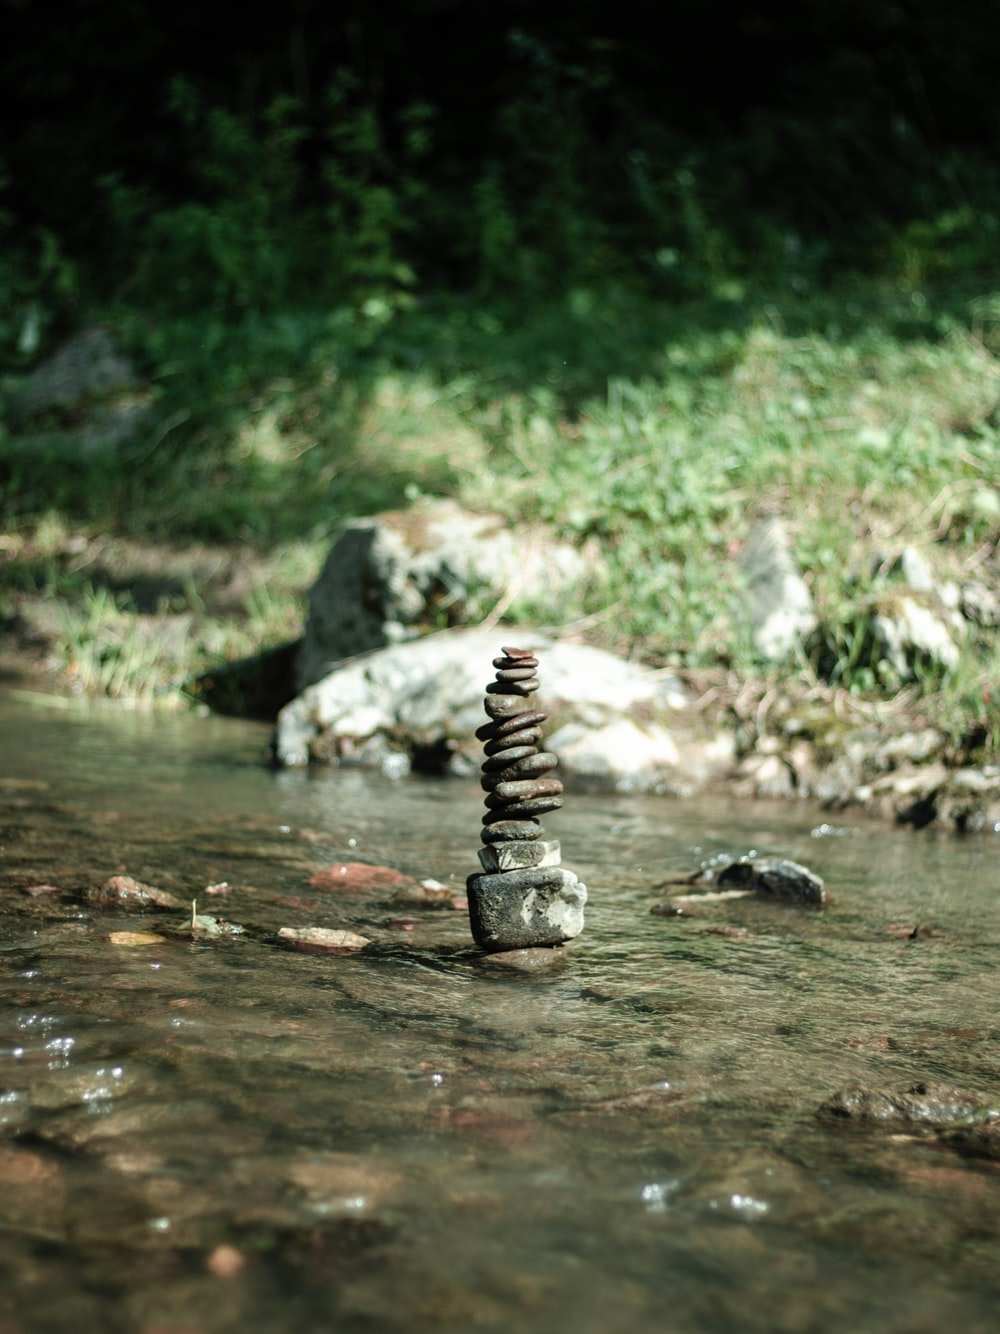 black and gray stones on water